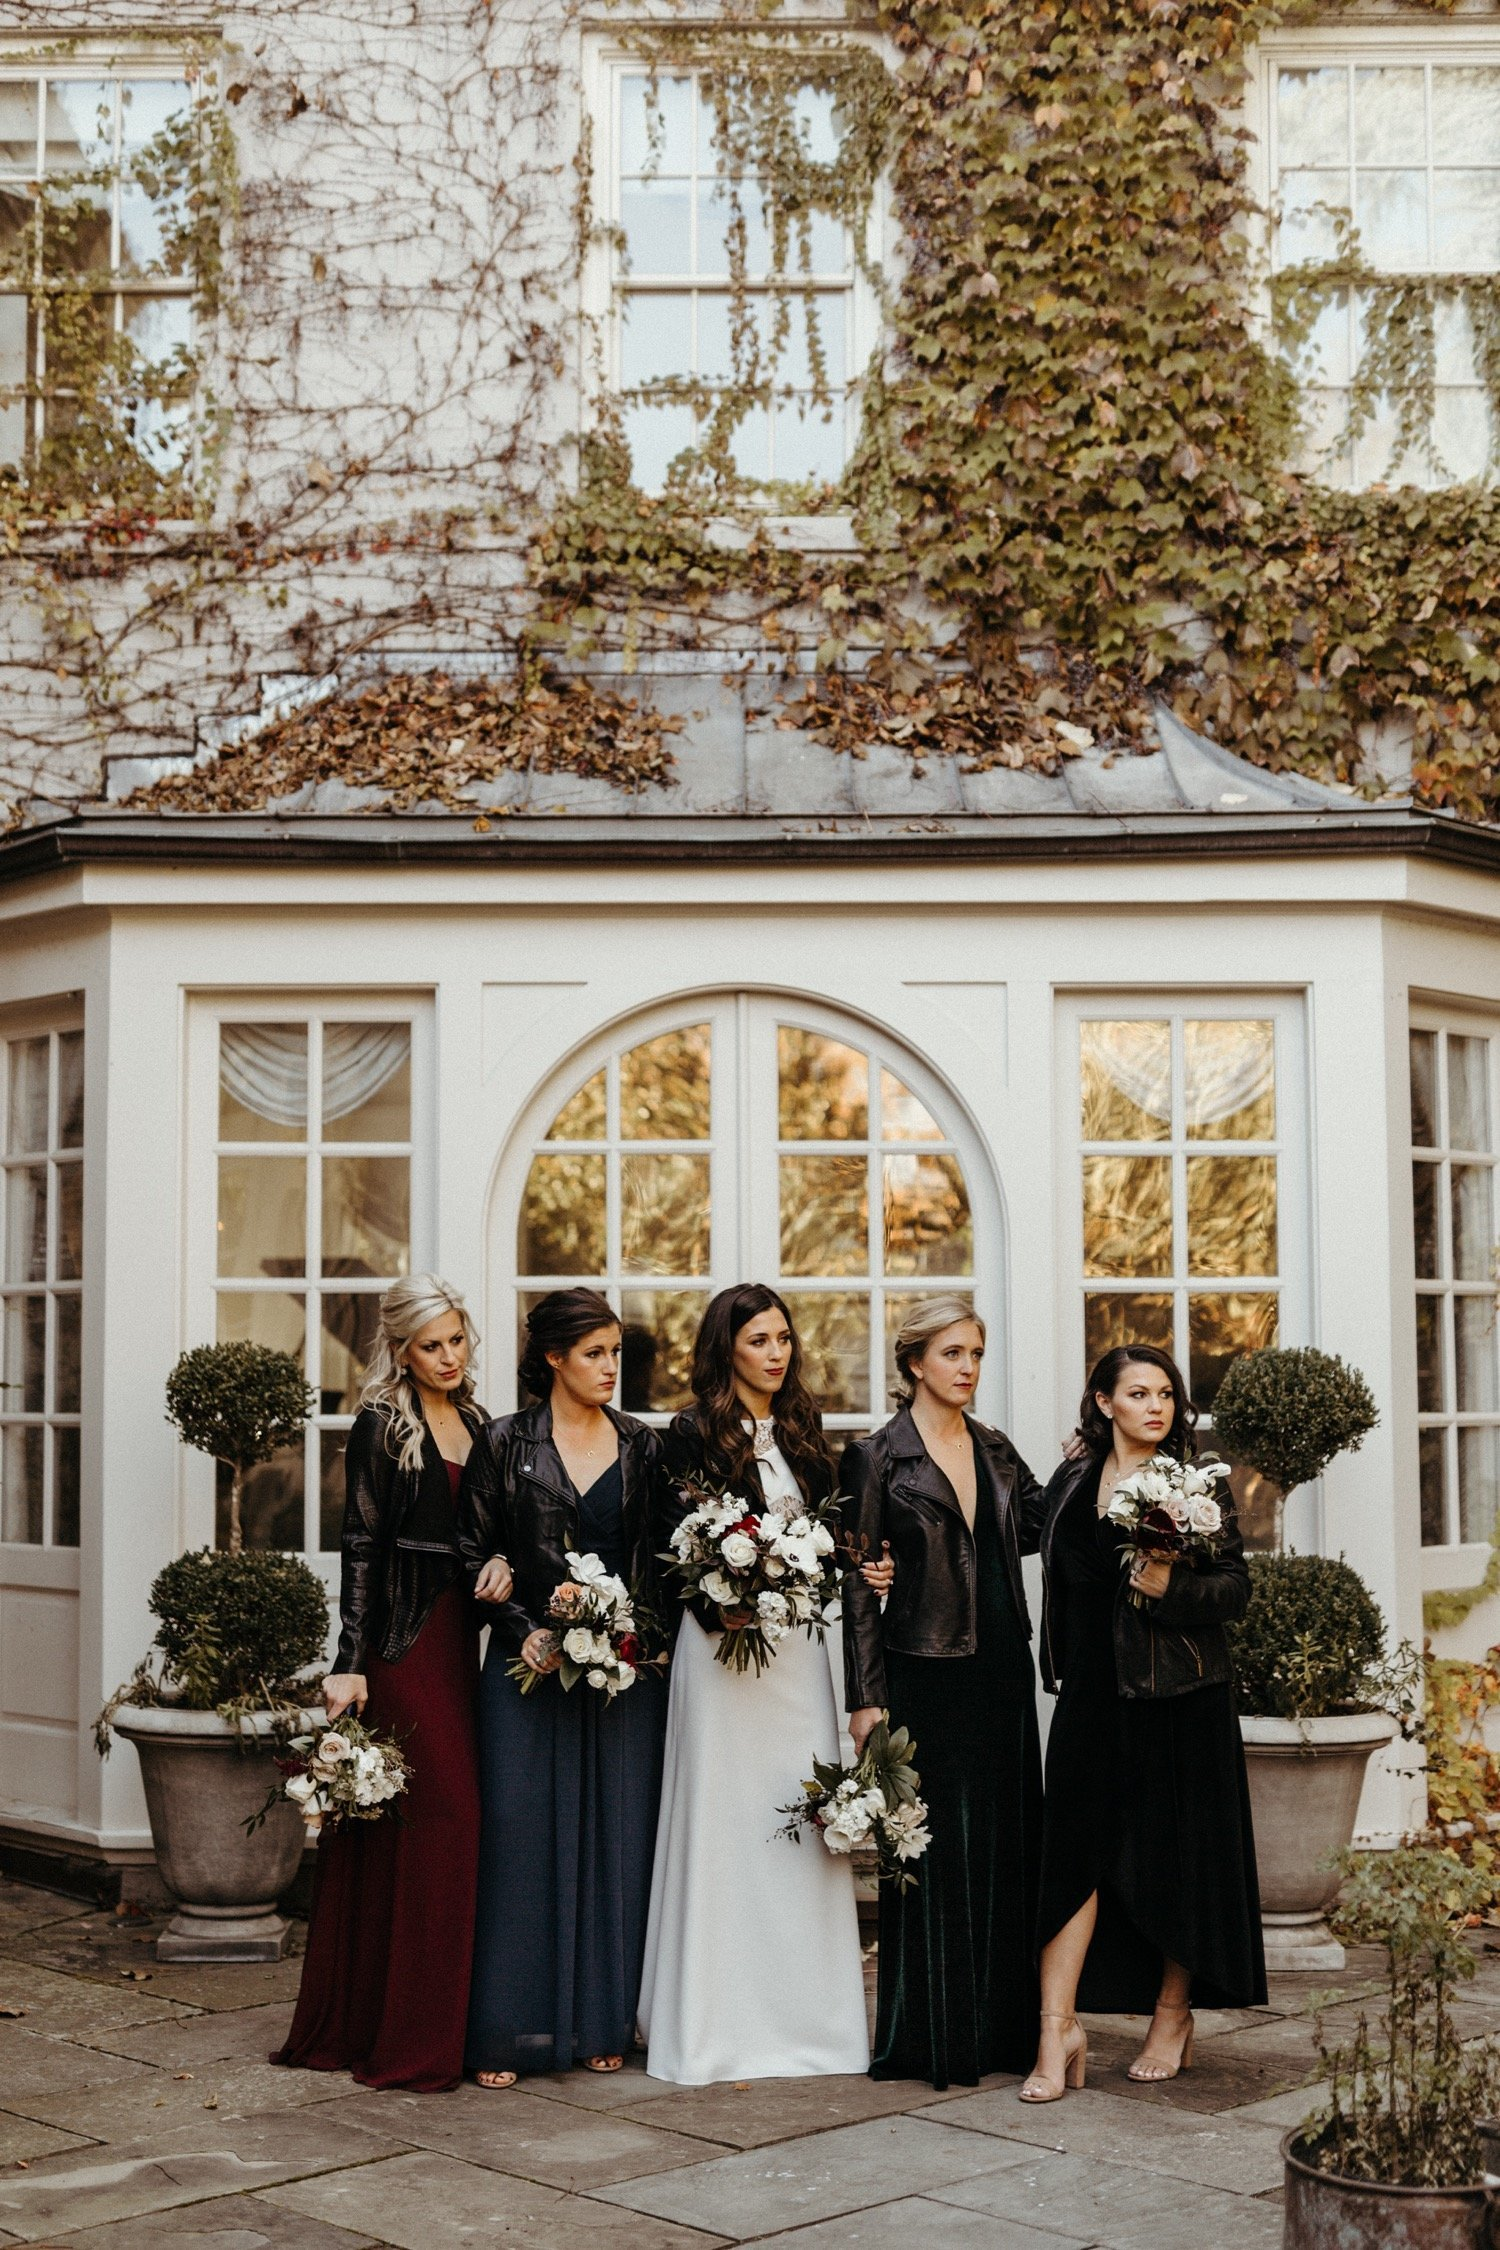 Luxuriously-Edgy--Velvety-DC-Wedding-Goodness-at-Dock-5--Moody-DC-Wedding-Photographer-Victoria-Selman-1